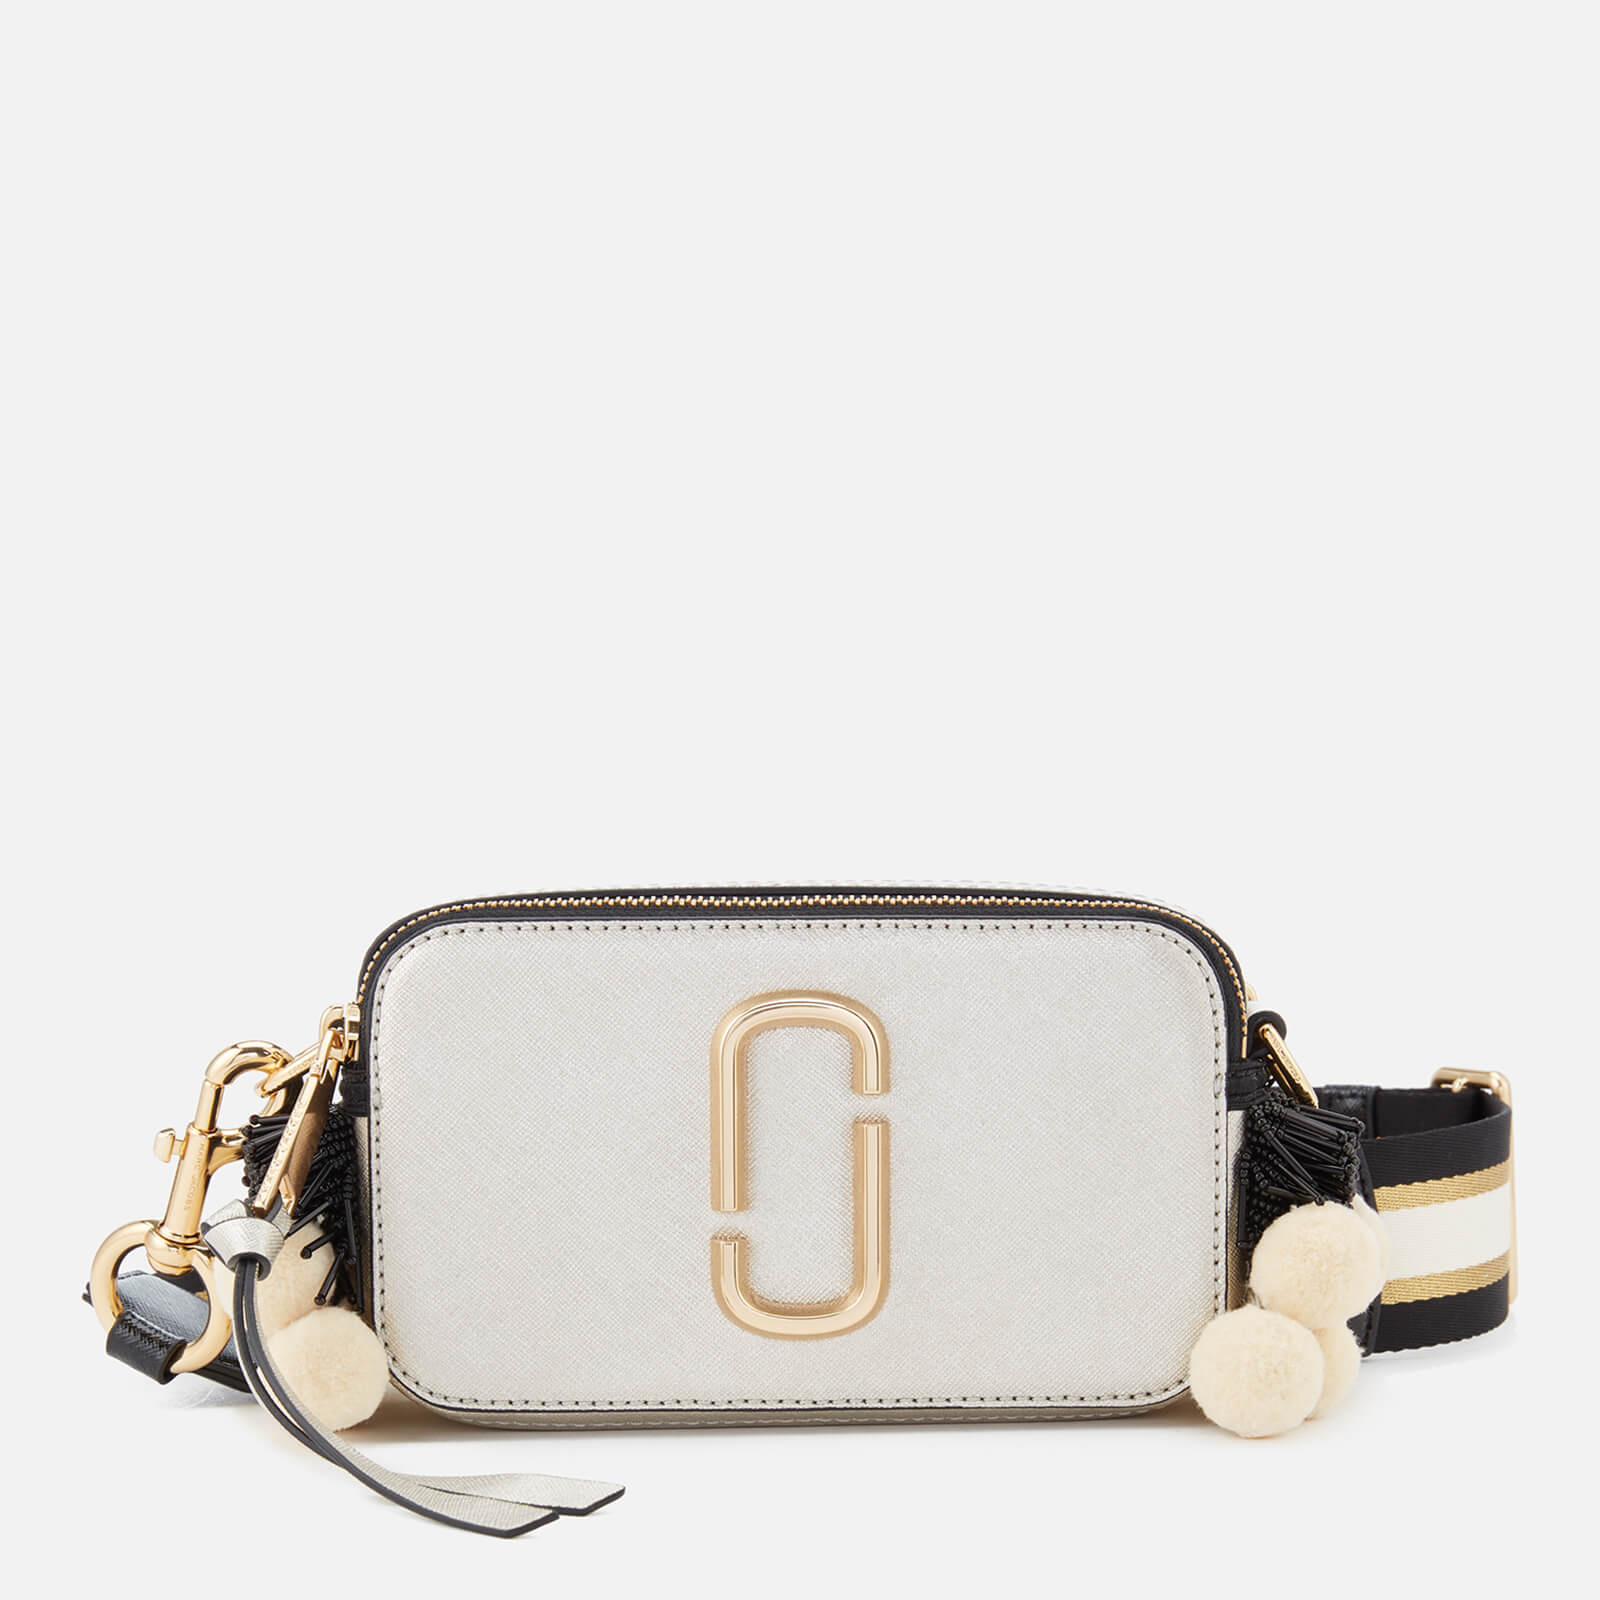 40e3d3e526 Marc Jacobs Women's Snapshot Beads and Poms Bag - Platinum/Multi - Free UK  Delivery over £50